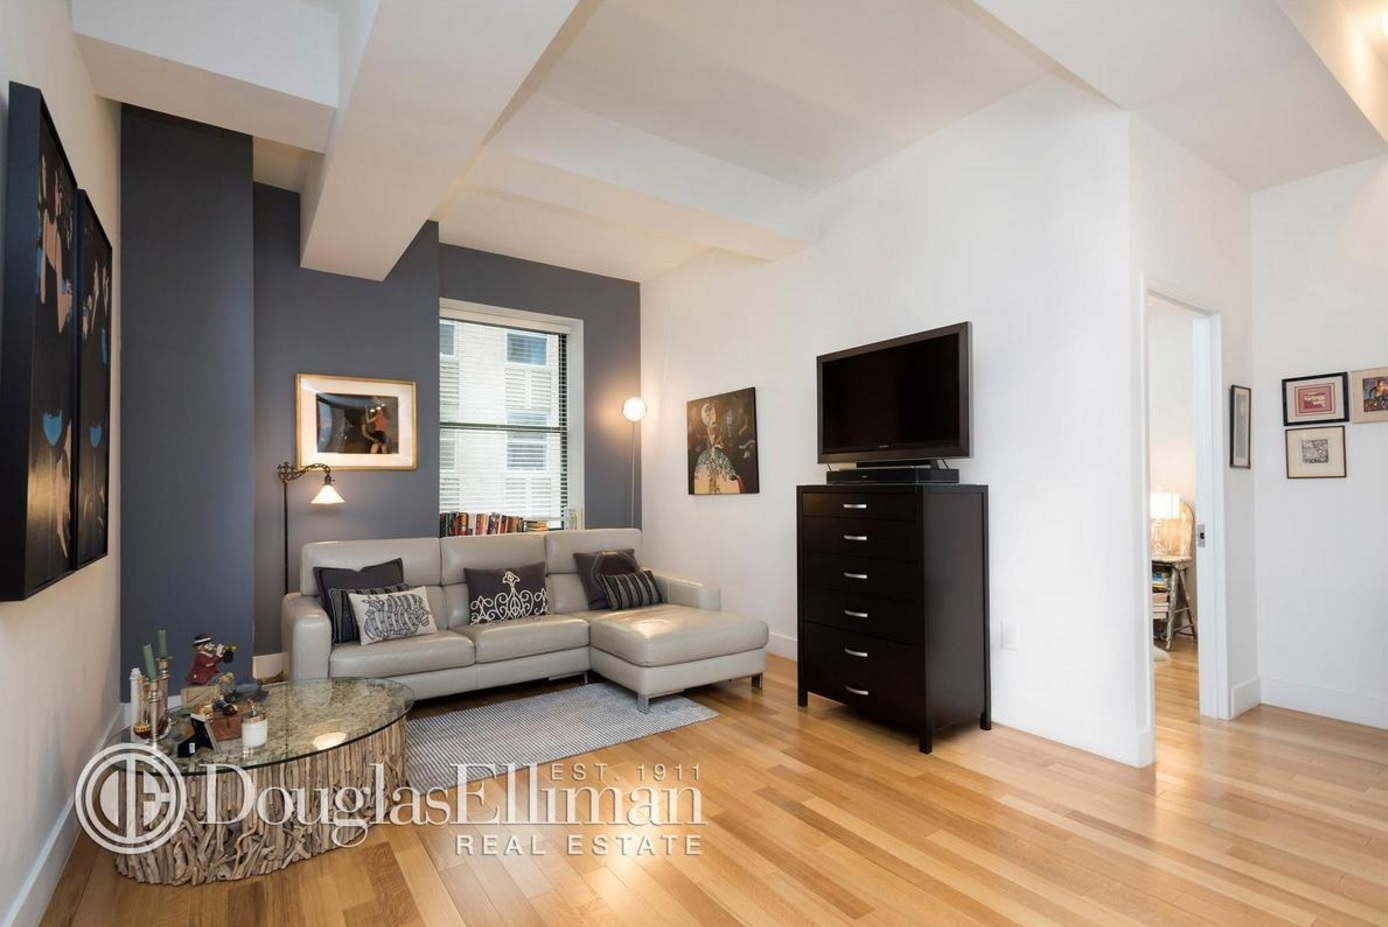 Financial District One Bedroom Bathroom Condo 945000 Located At 99 John Street Between Gold And Cliff Streets An Art Deco Conversion Building